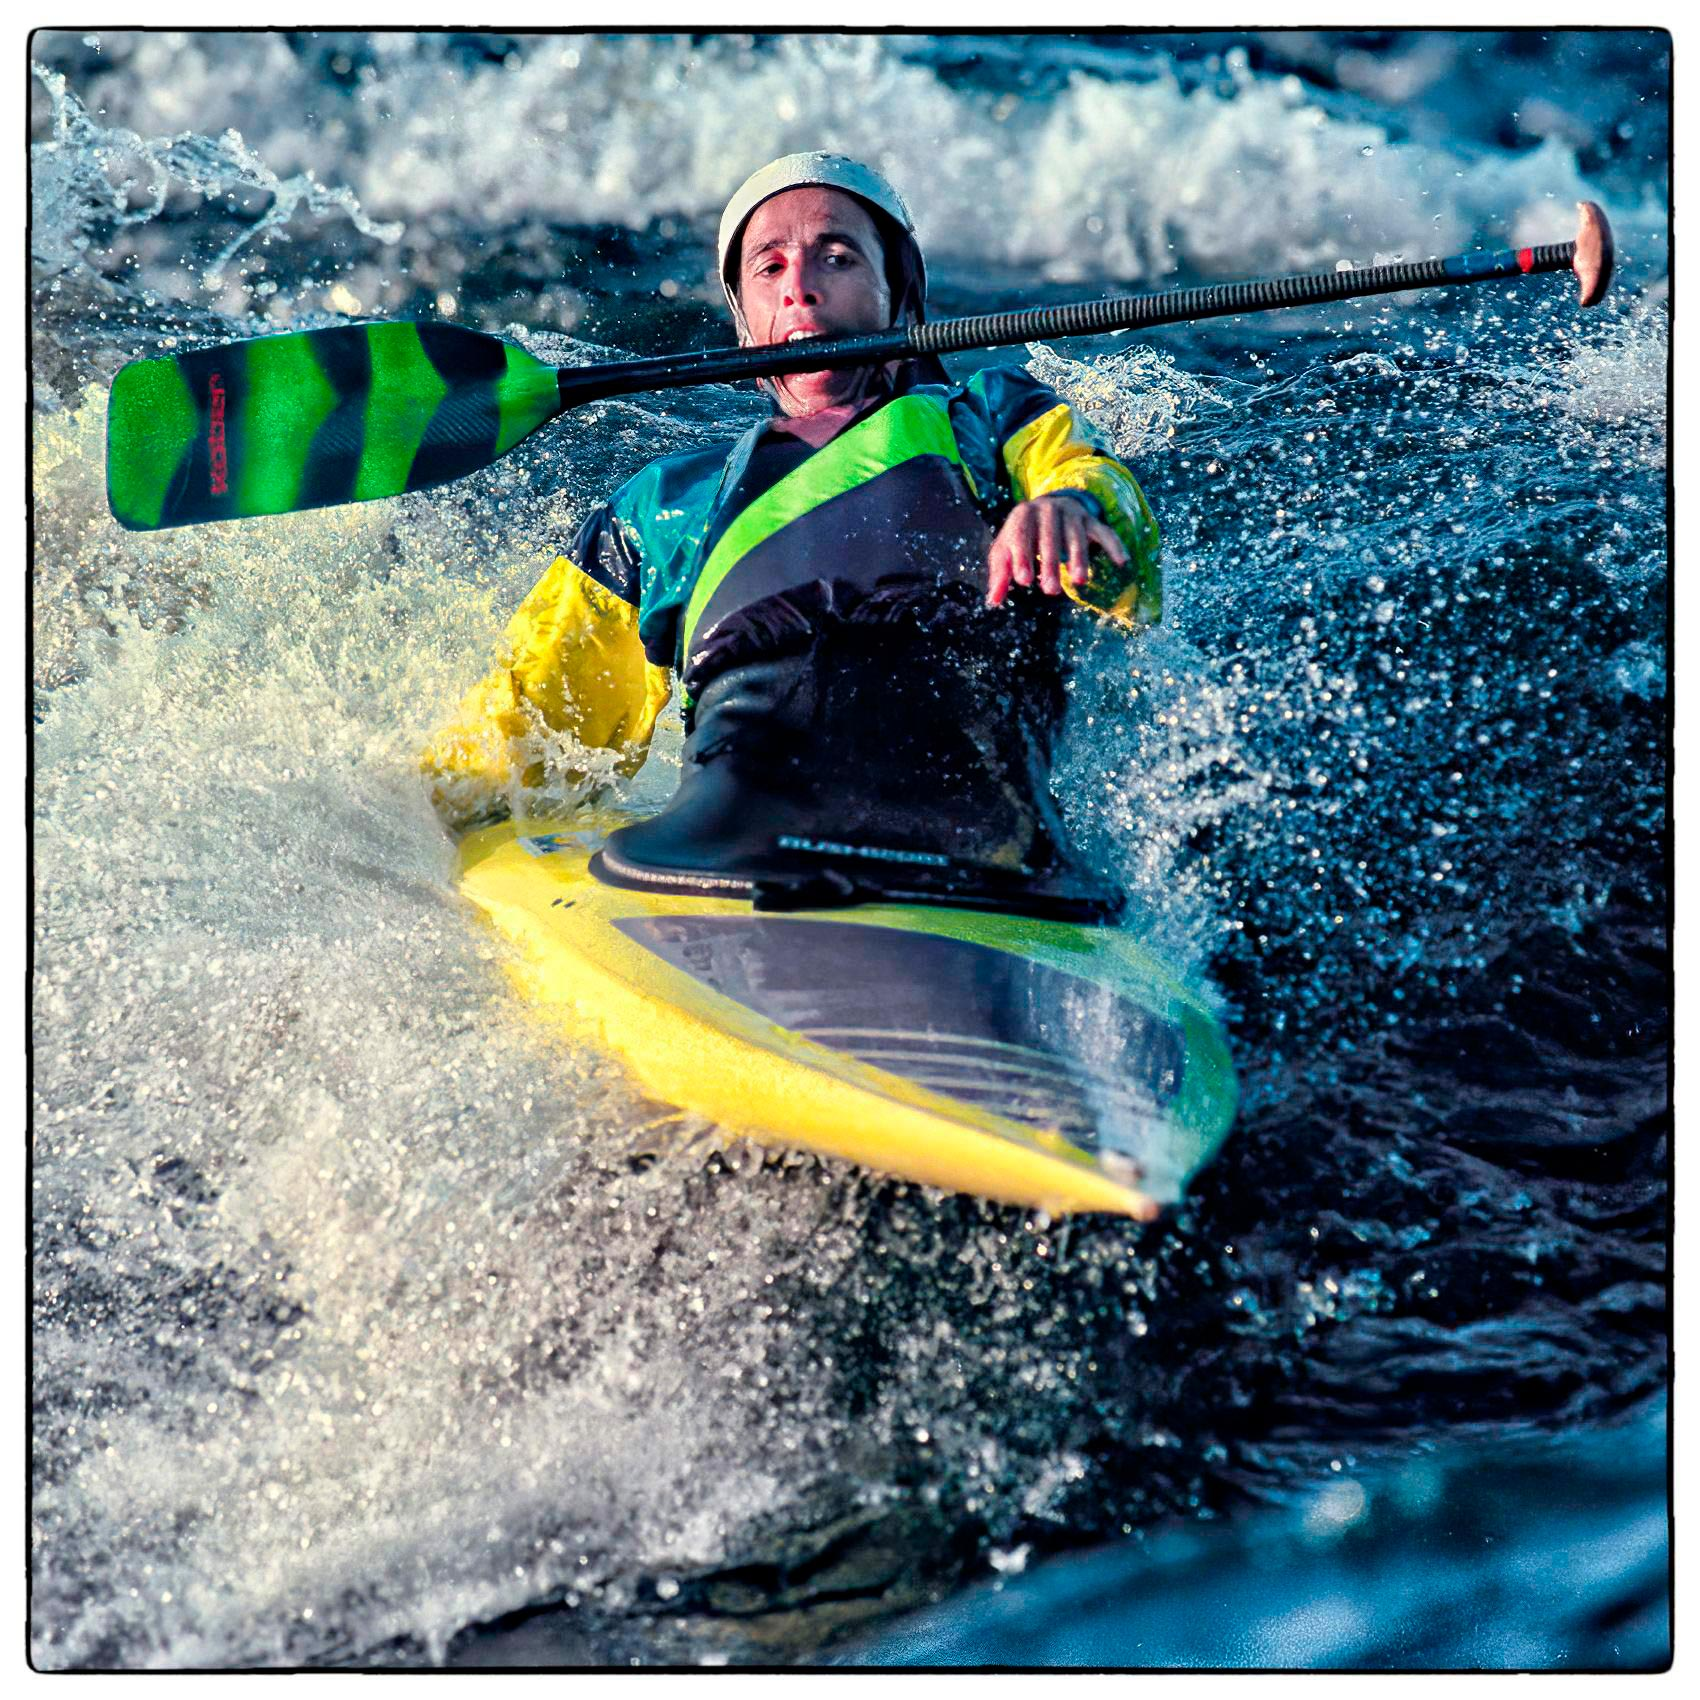 a-man-grimaces-as-he-kayaks-and-holds-his-paddle-in-his-mouth-as-he-surfs-the-waves-on-the-ottawa-river